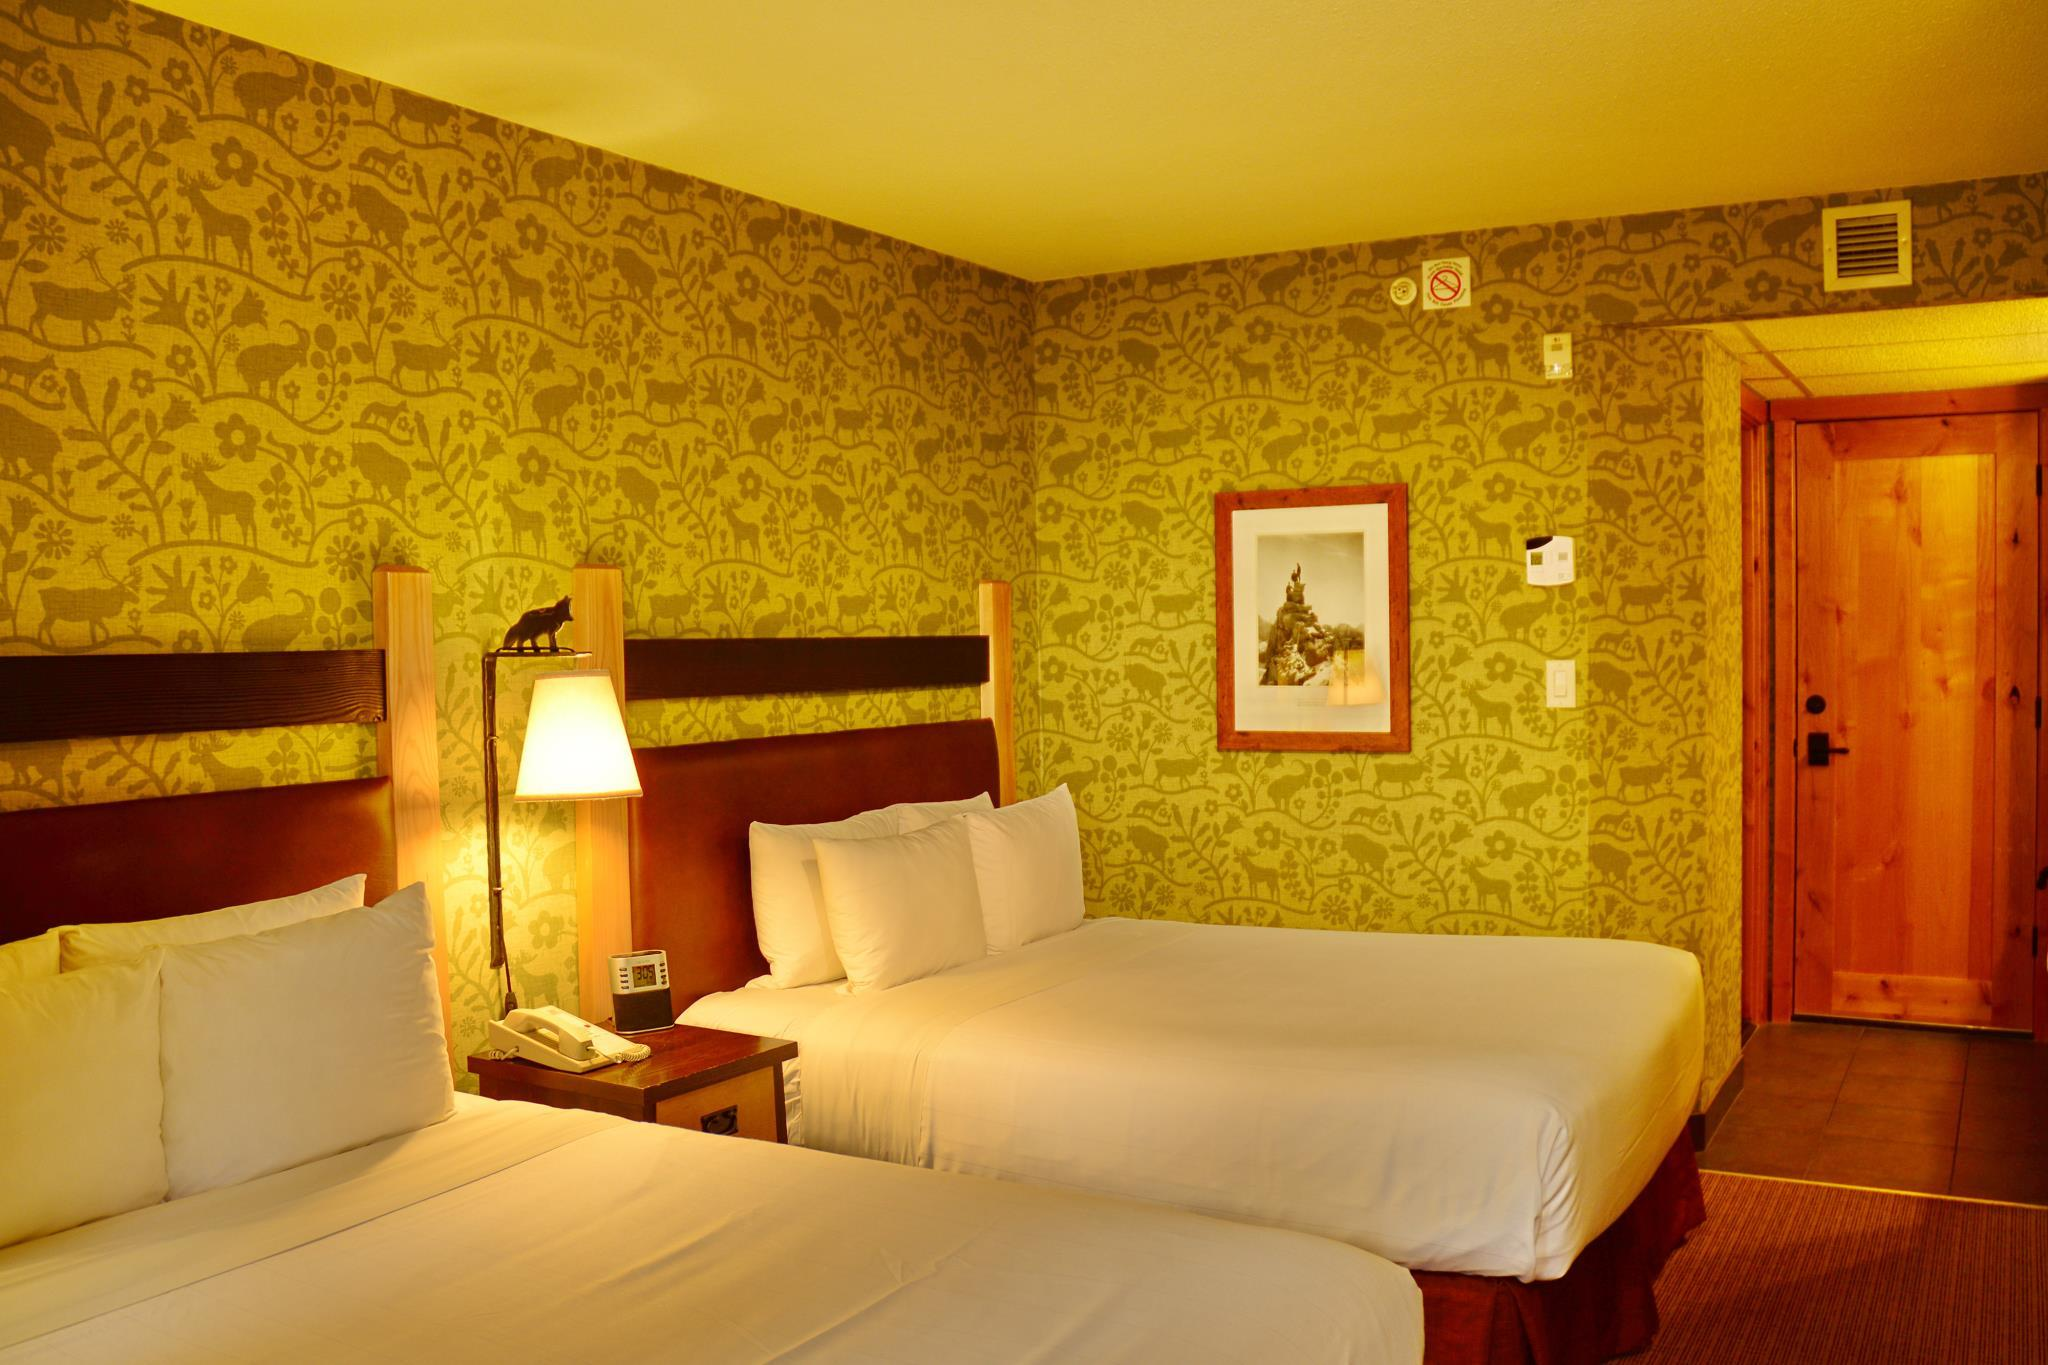 双人房(2张双人床) (Double Room with Two Double Beds)